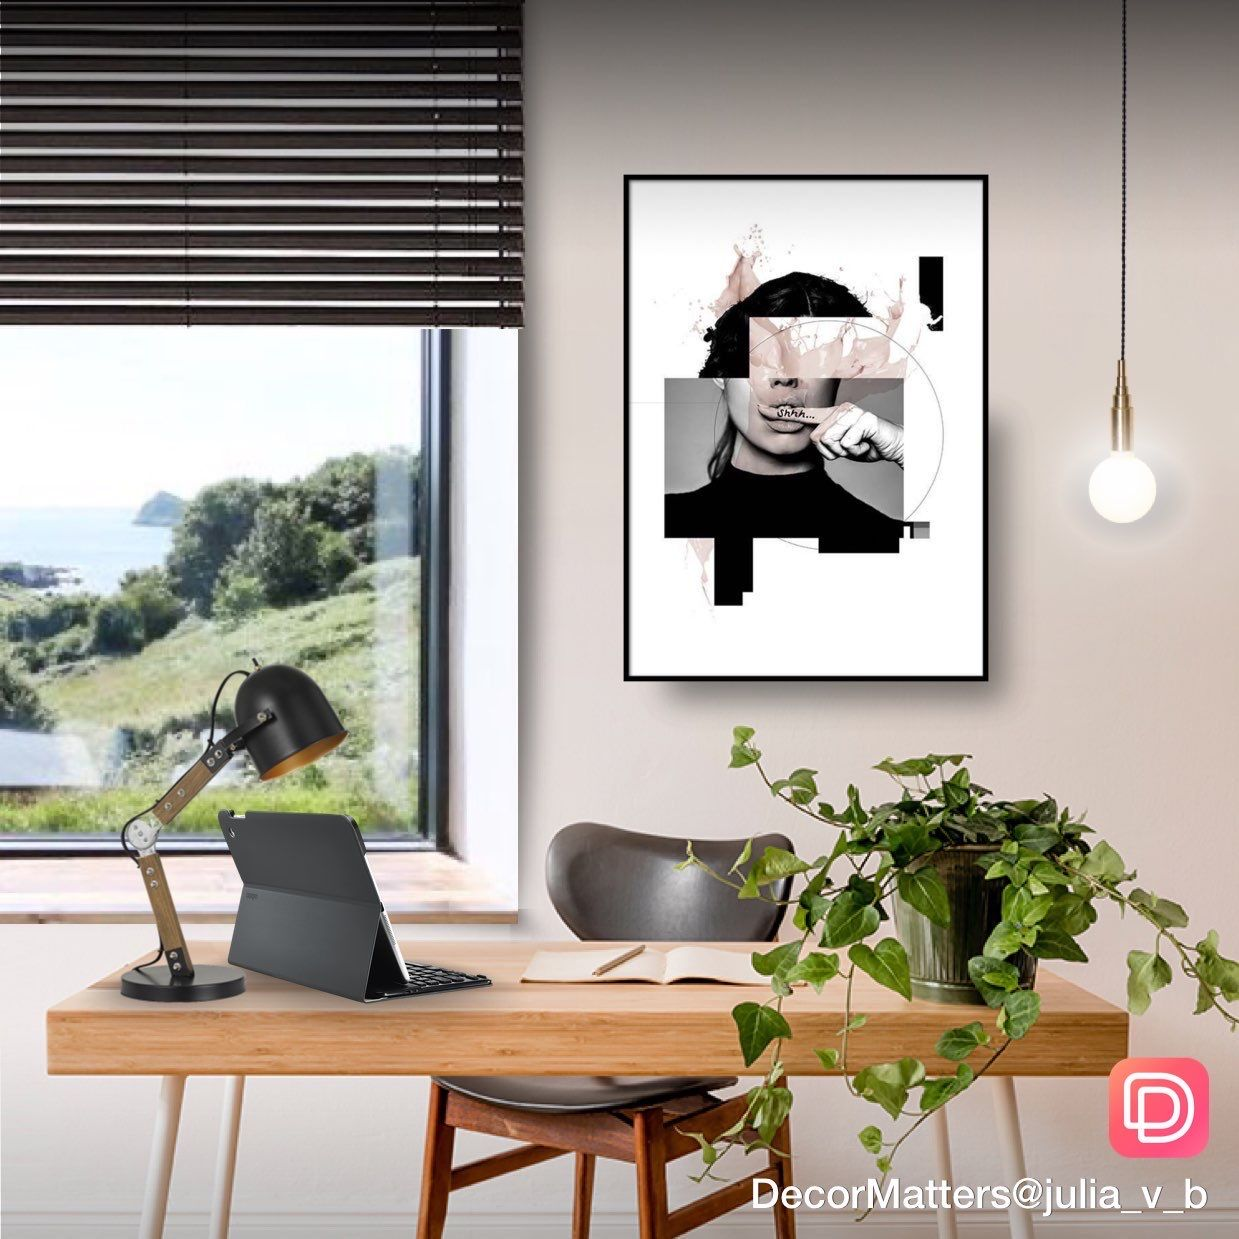 A productive home office corner by the window. Click the image to try our free home design app.  (Keywords: interior design apps, room design app, free home decor app, dream rooms, dream house, house design, room ideas, home decor, design home, decormatters, decormatters app, decor matters, home decor ideas, DIY home decor, positive vibes, positive thoughts)